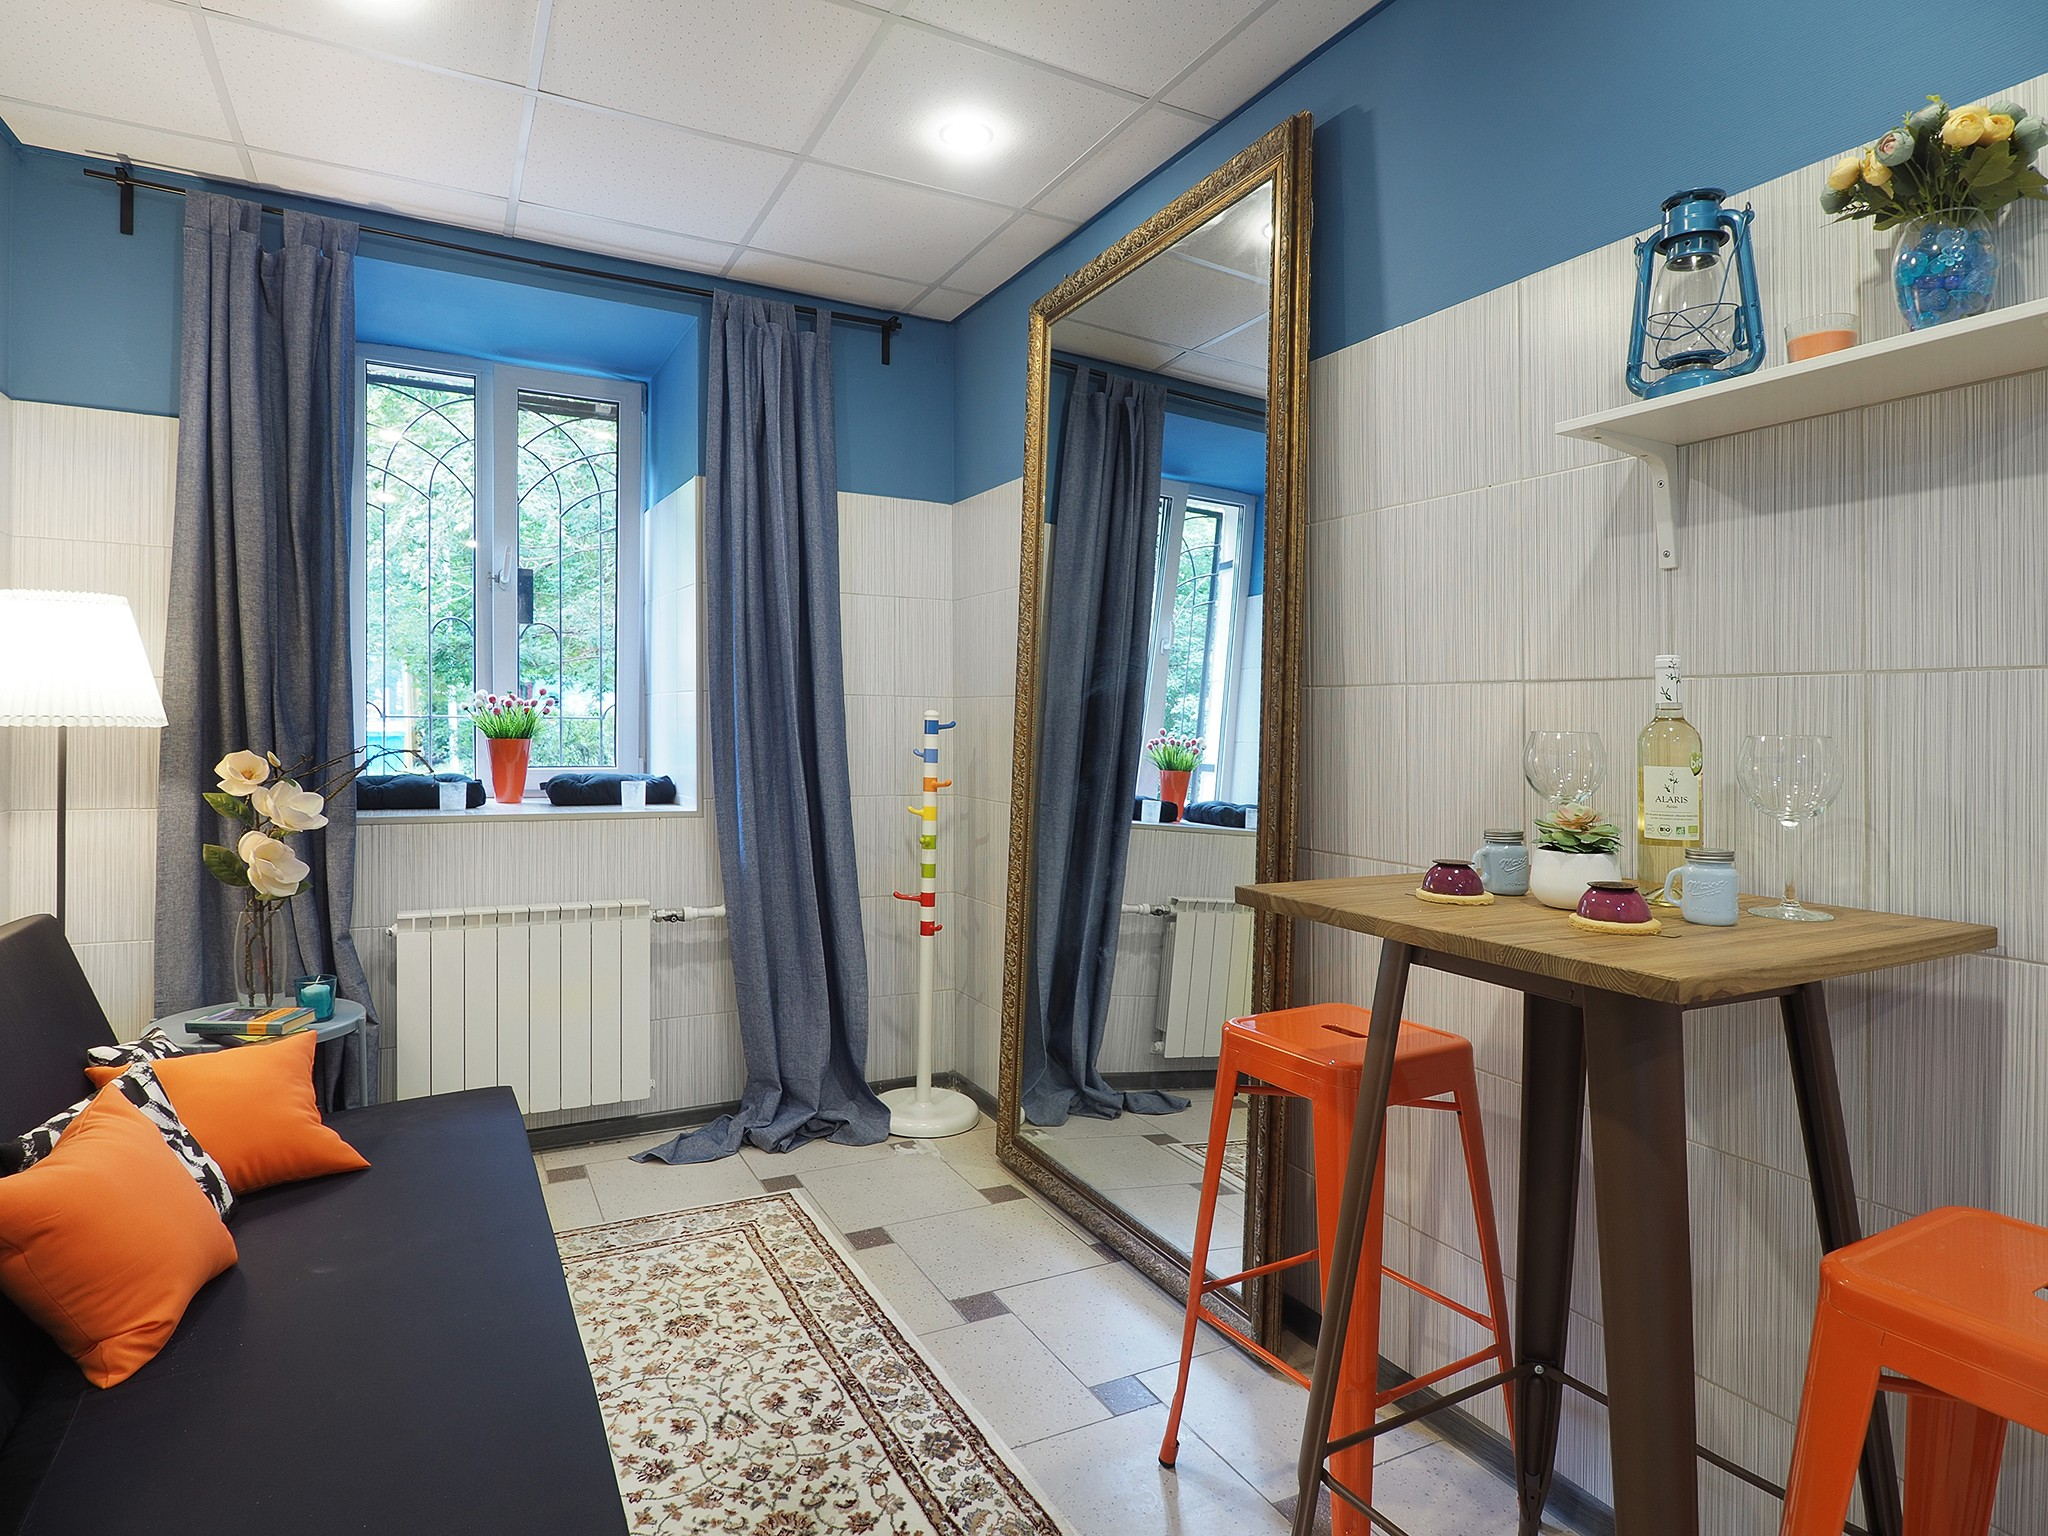 interior photos of a small hostel in Moscow